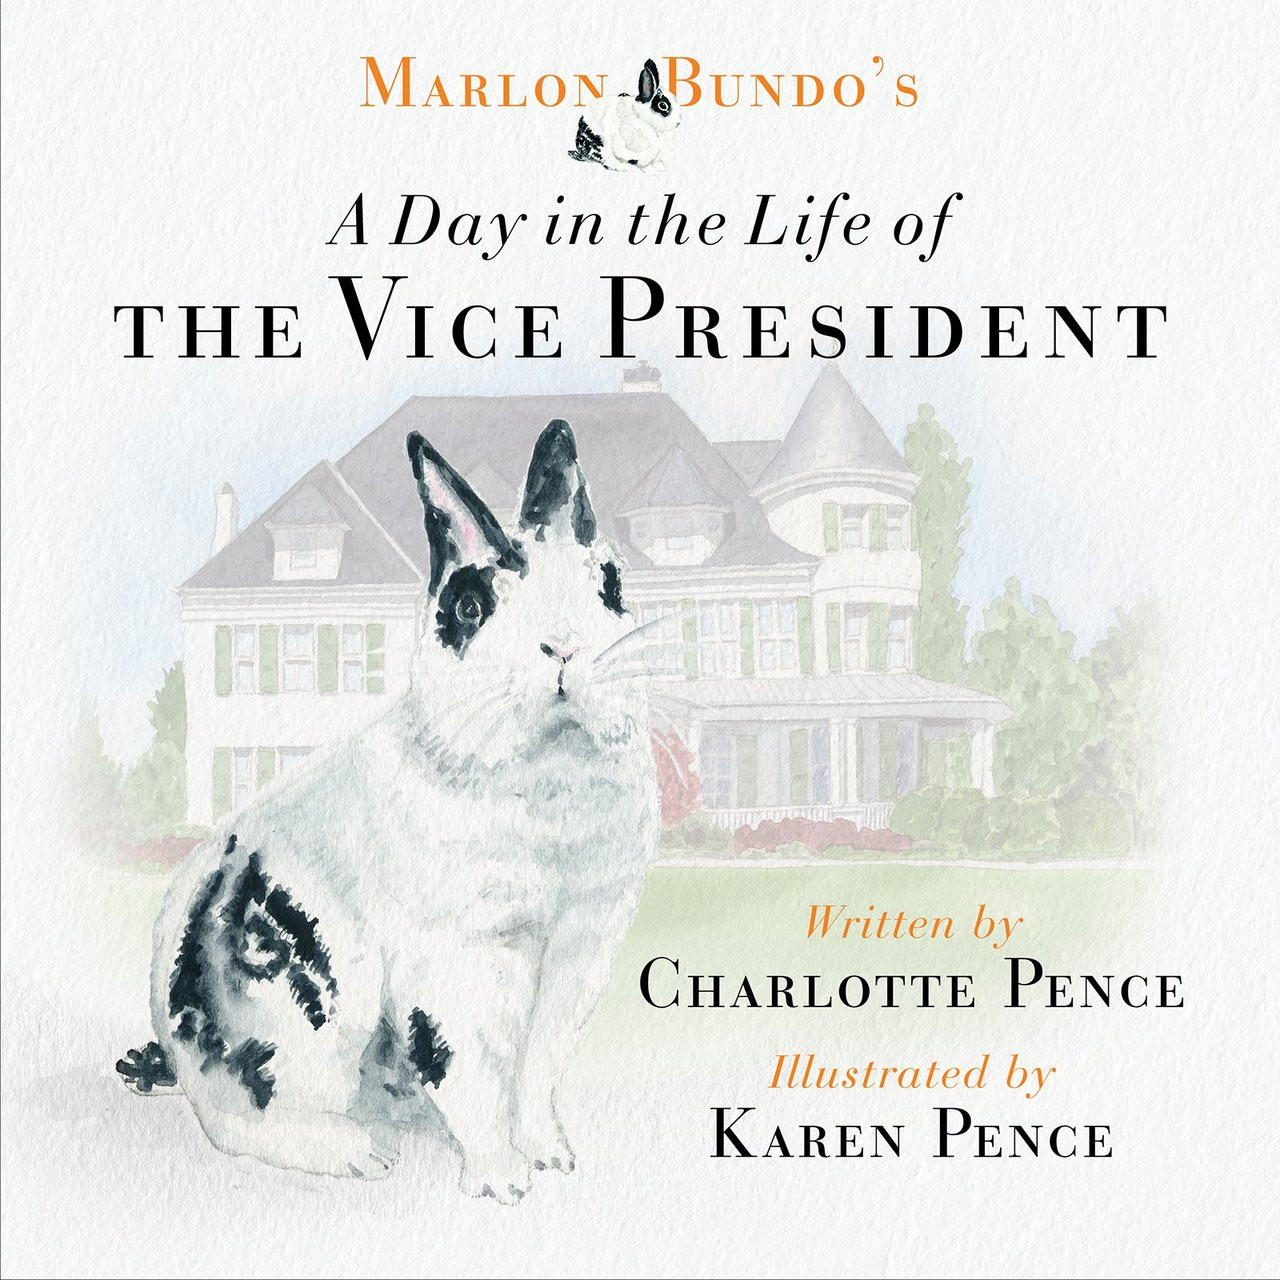 Marlon Bundo's Day in the Life of the Vice President by Karen & Charlotte Pence